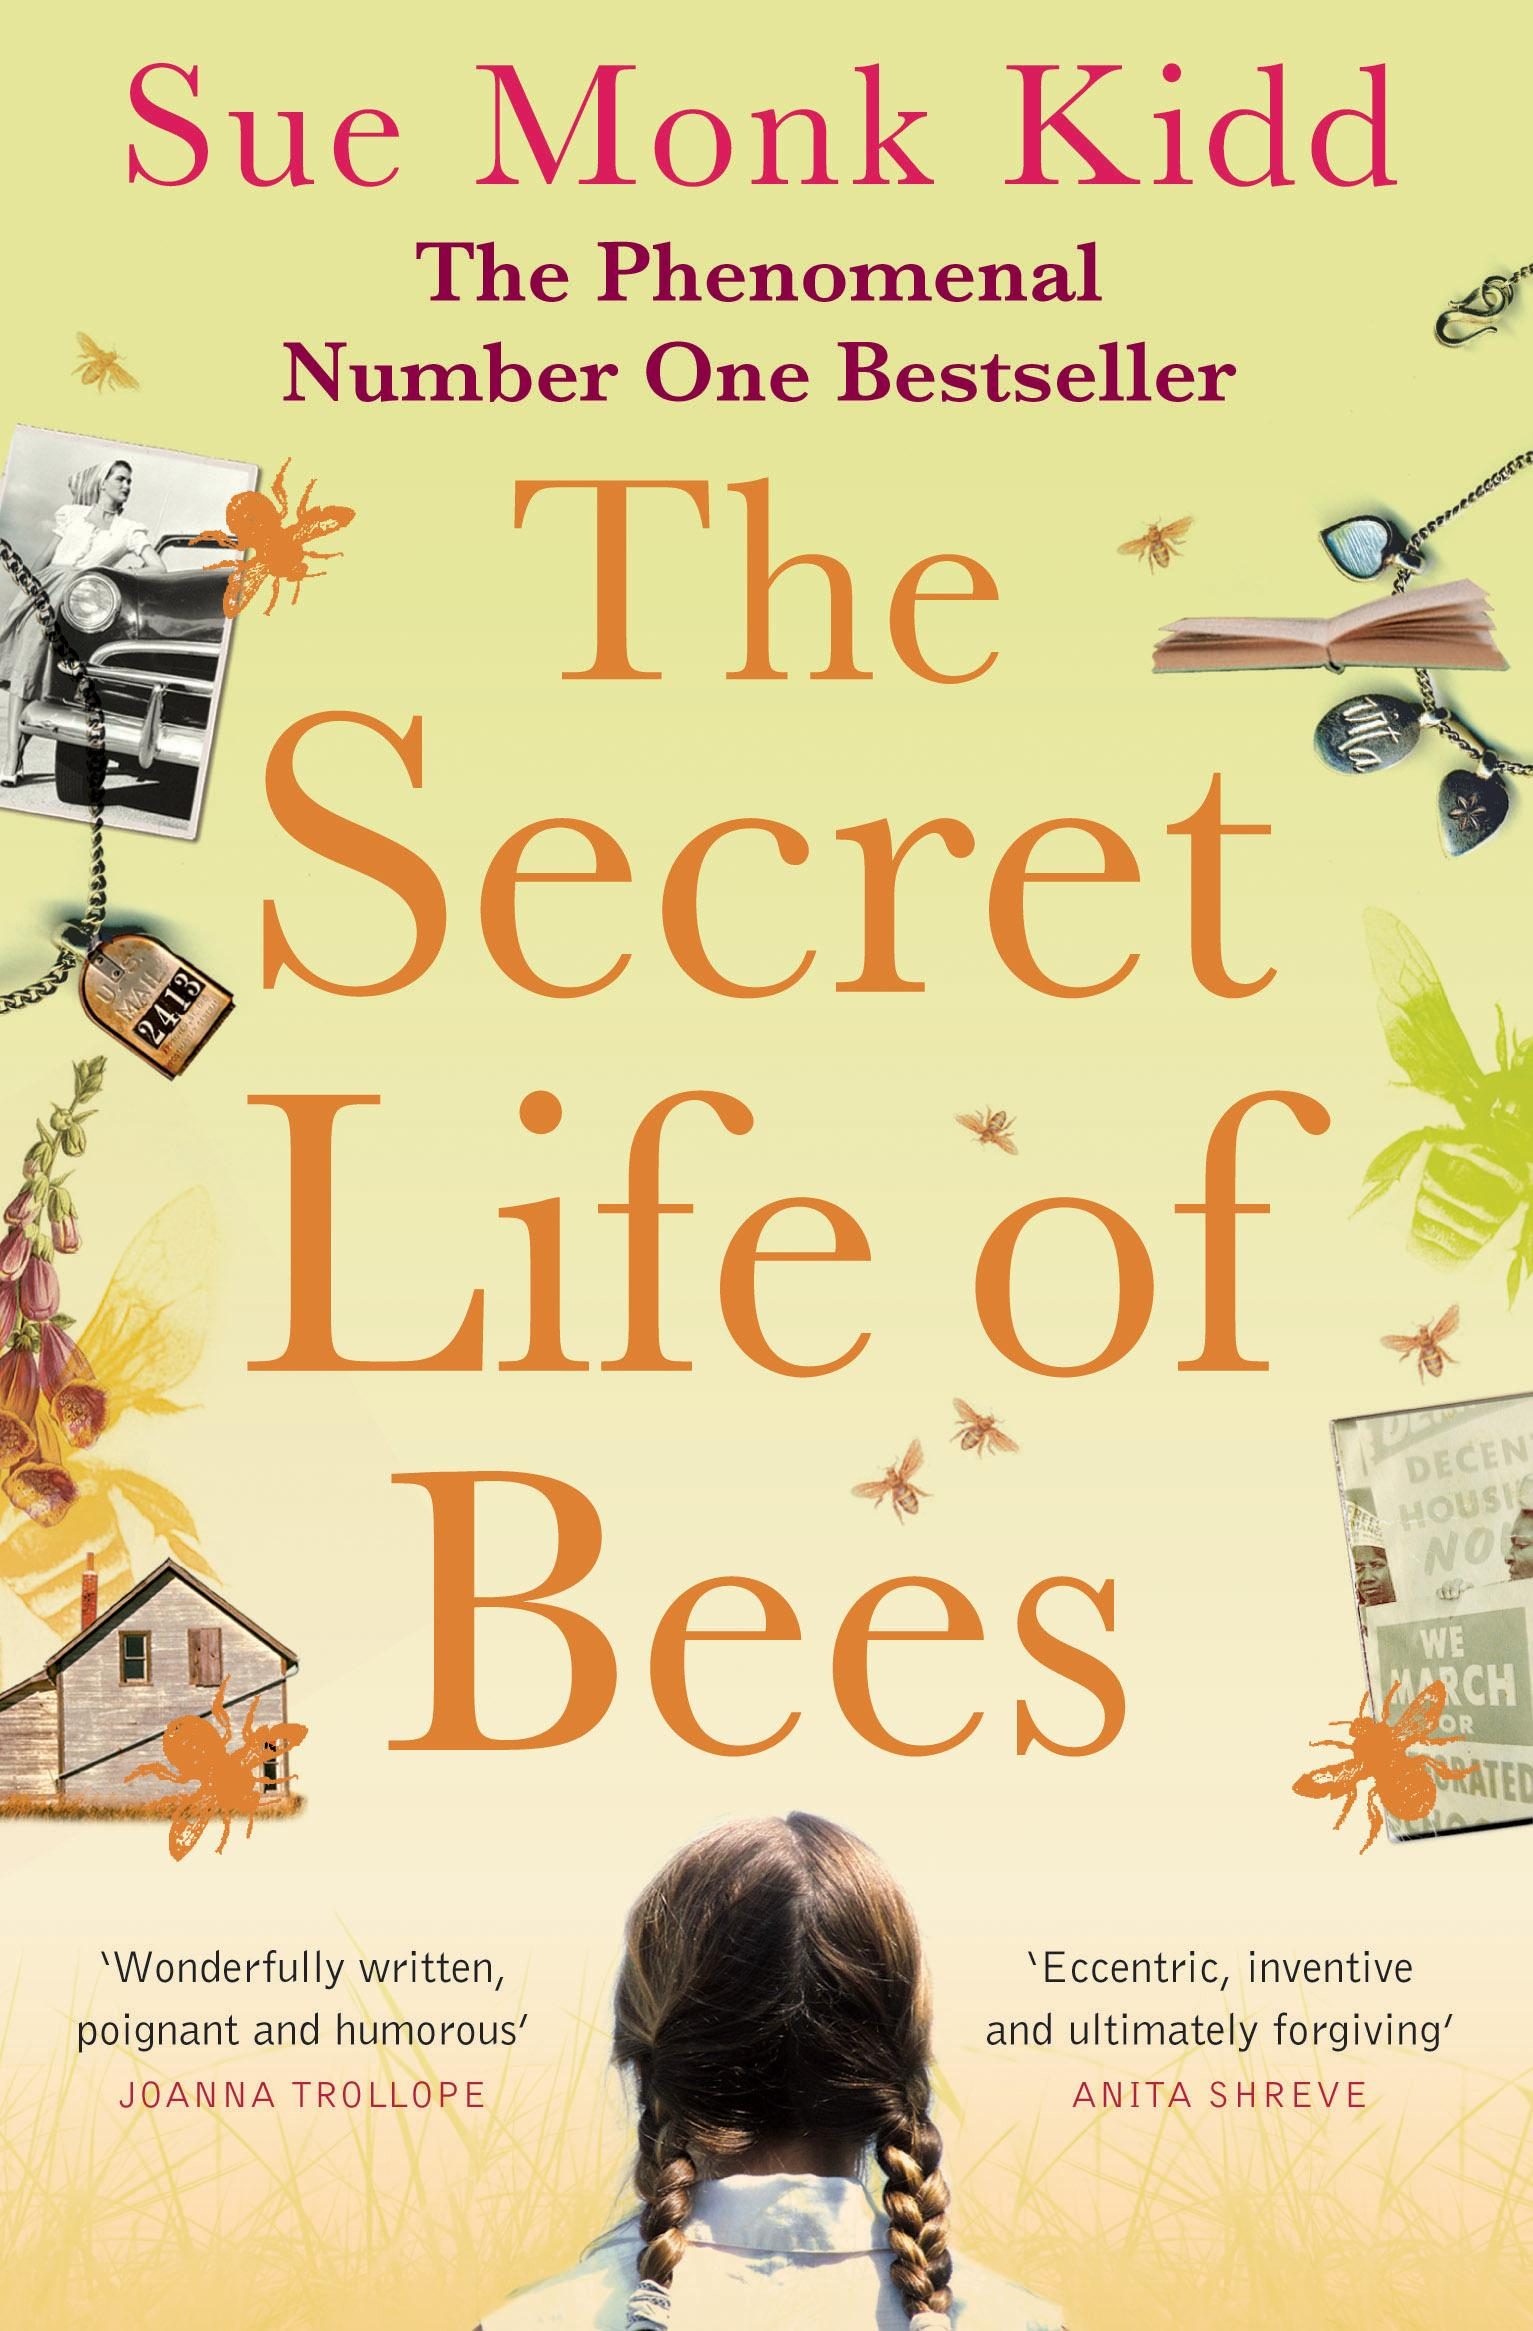 sue monk kidds the secret life of bees essay